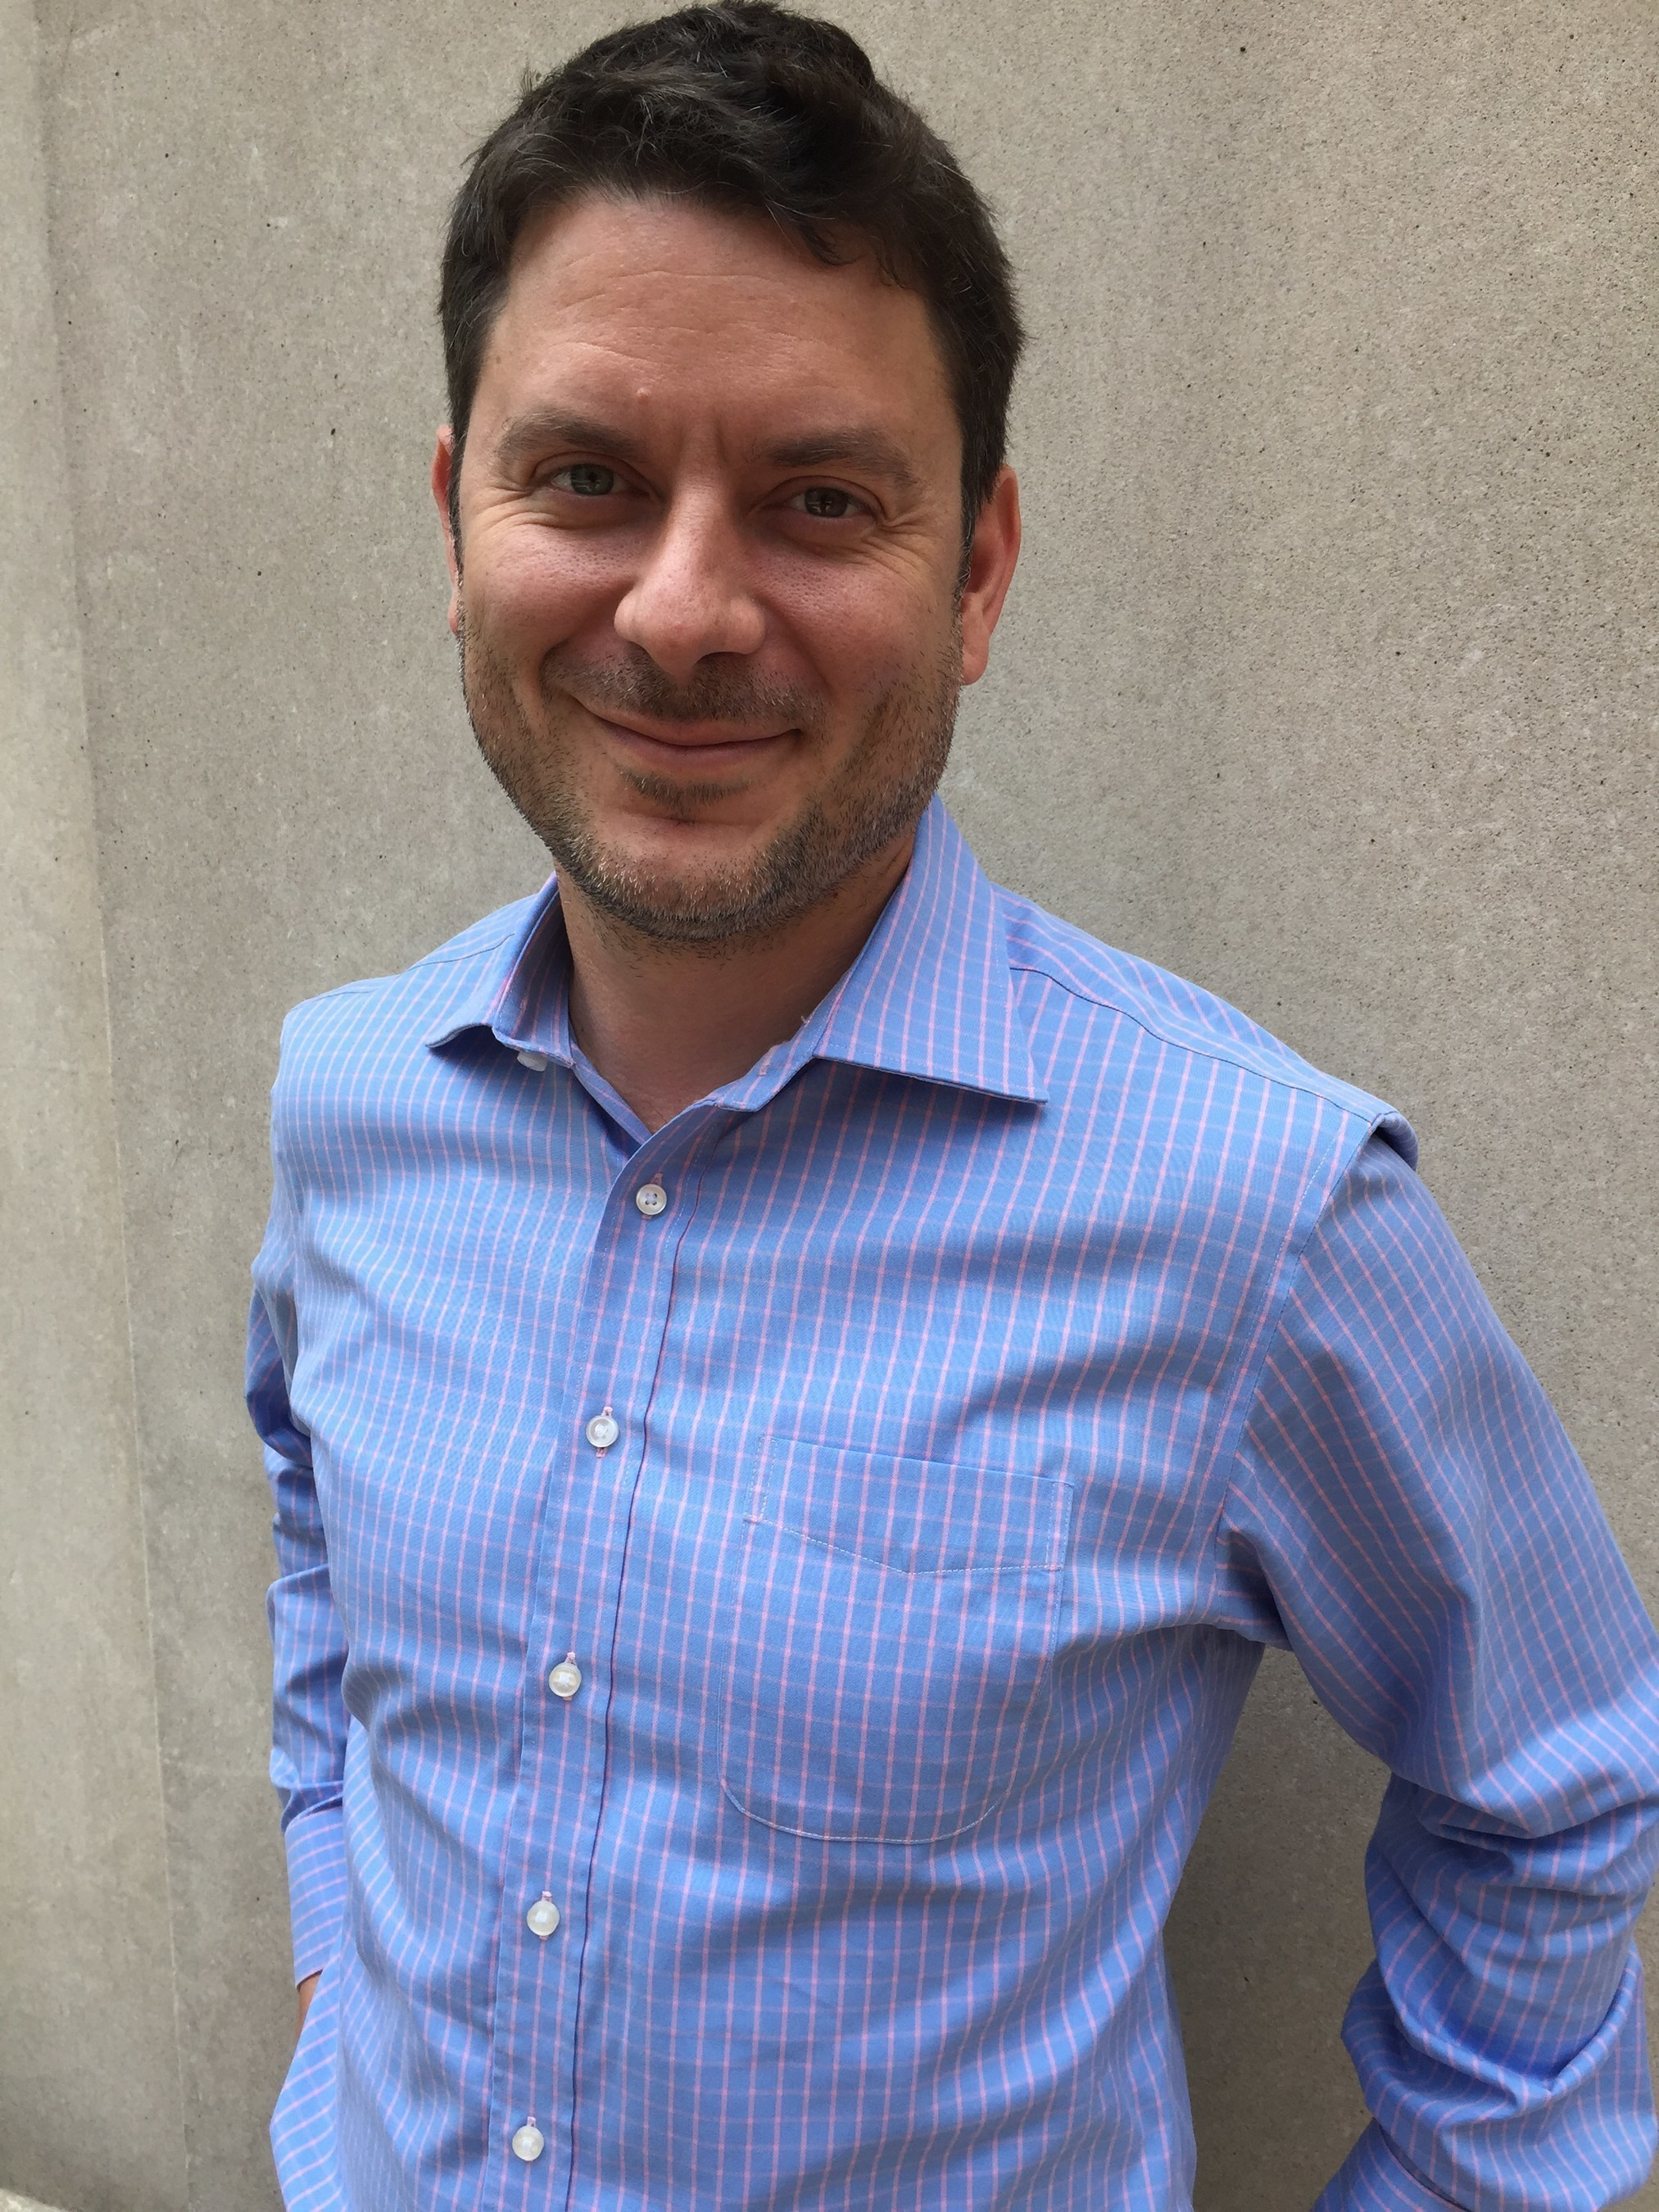 Home Front Communications Announces Wyatt Queener as VP and Director of Interactive